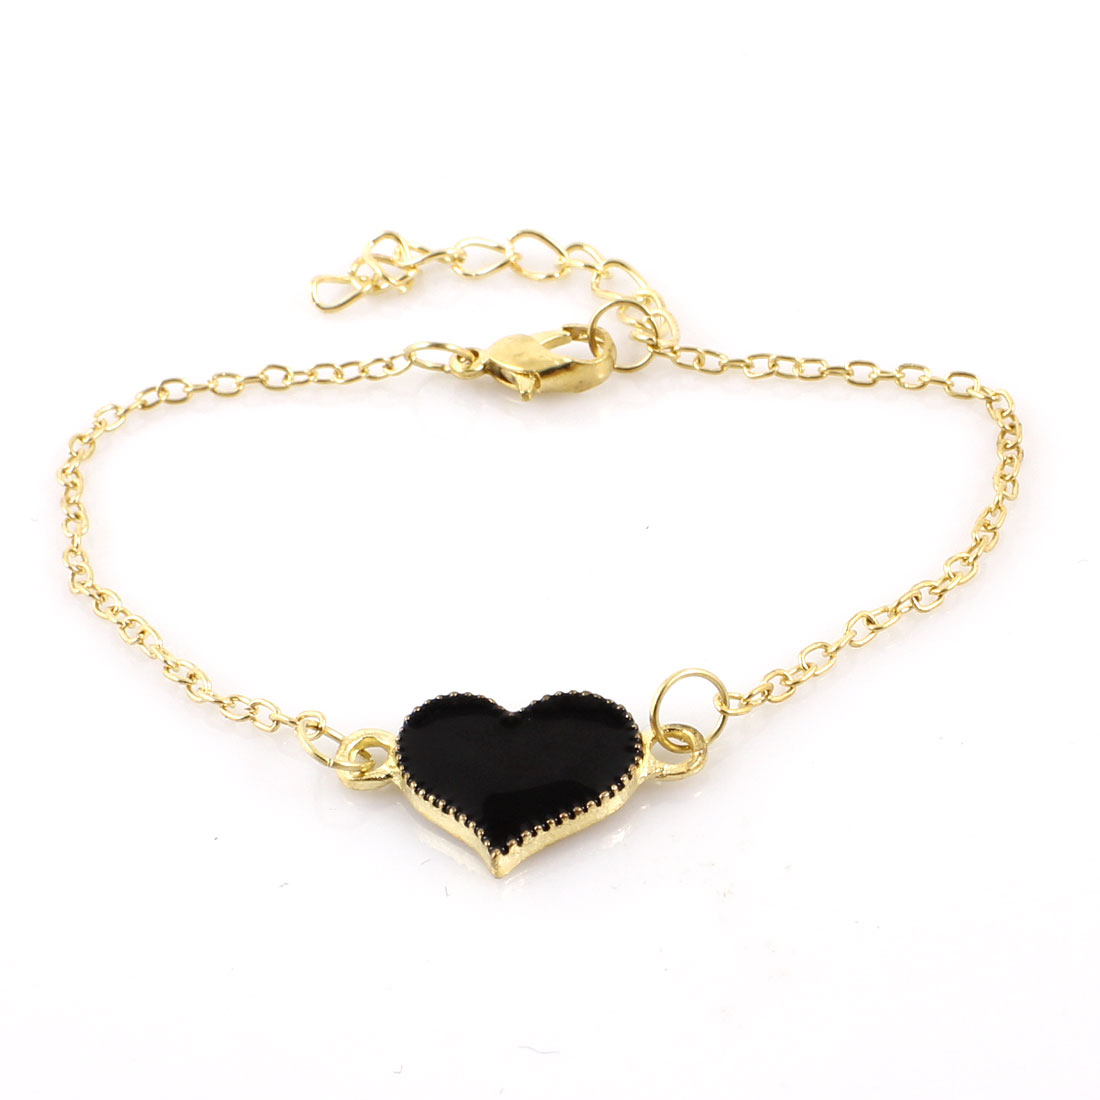 Gold Tone Black Heart Shaped Decor Metal Chain Lobster Clasp Wrist Bracelet